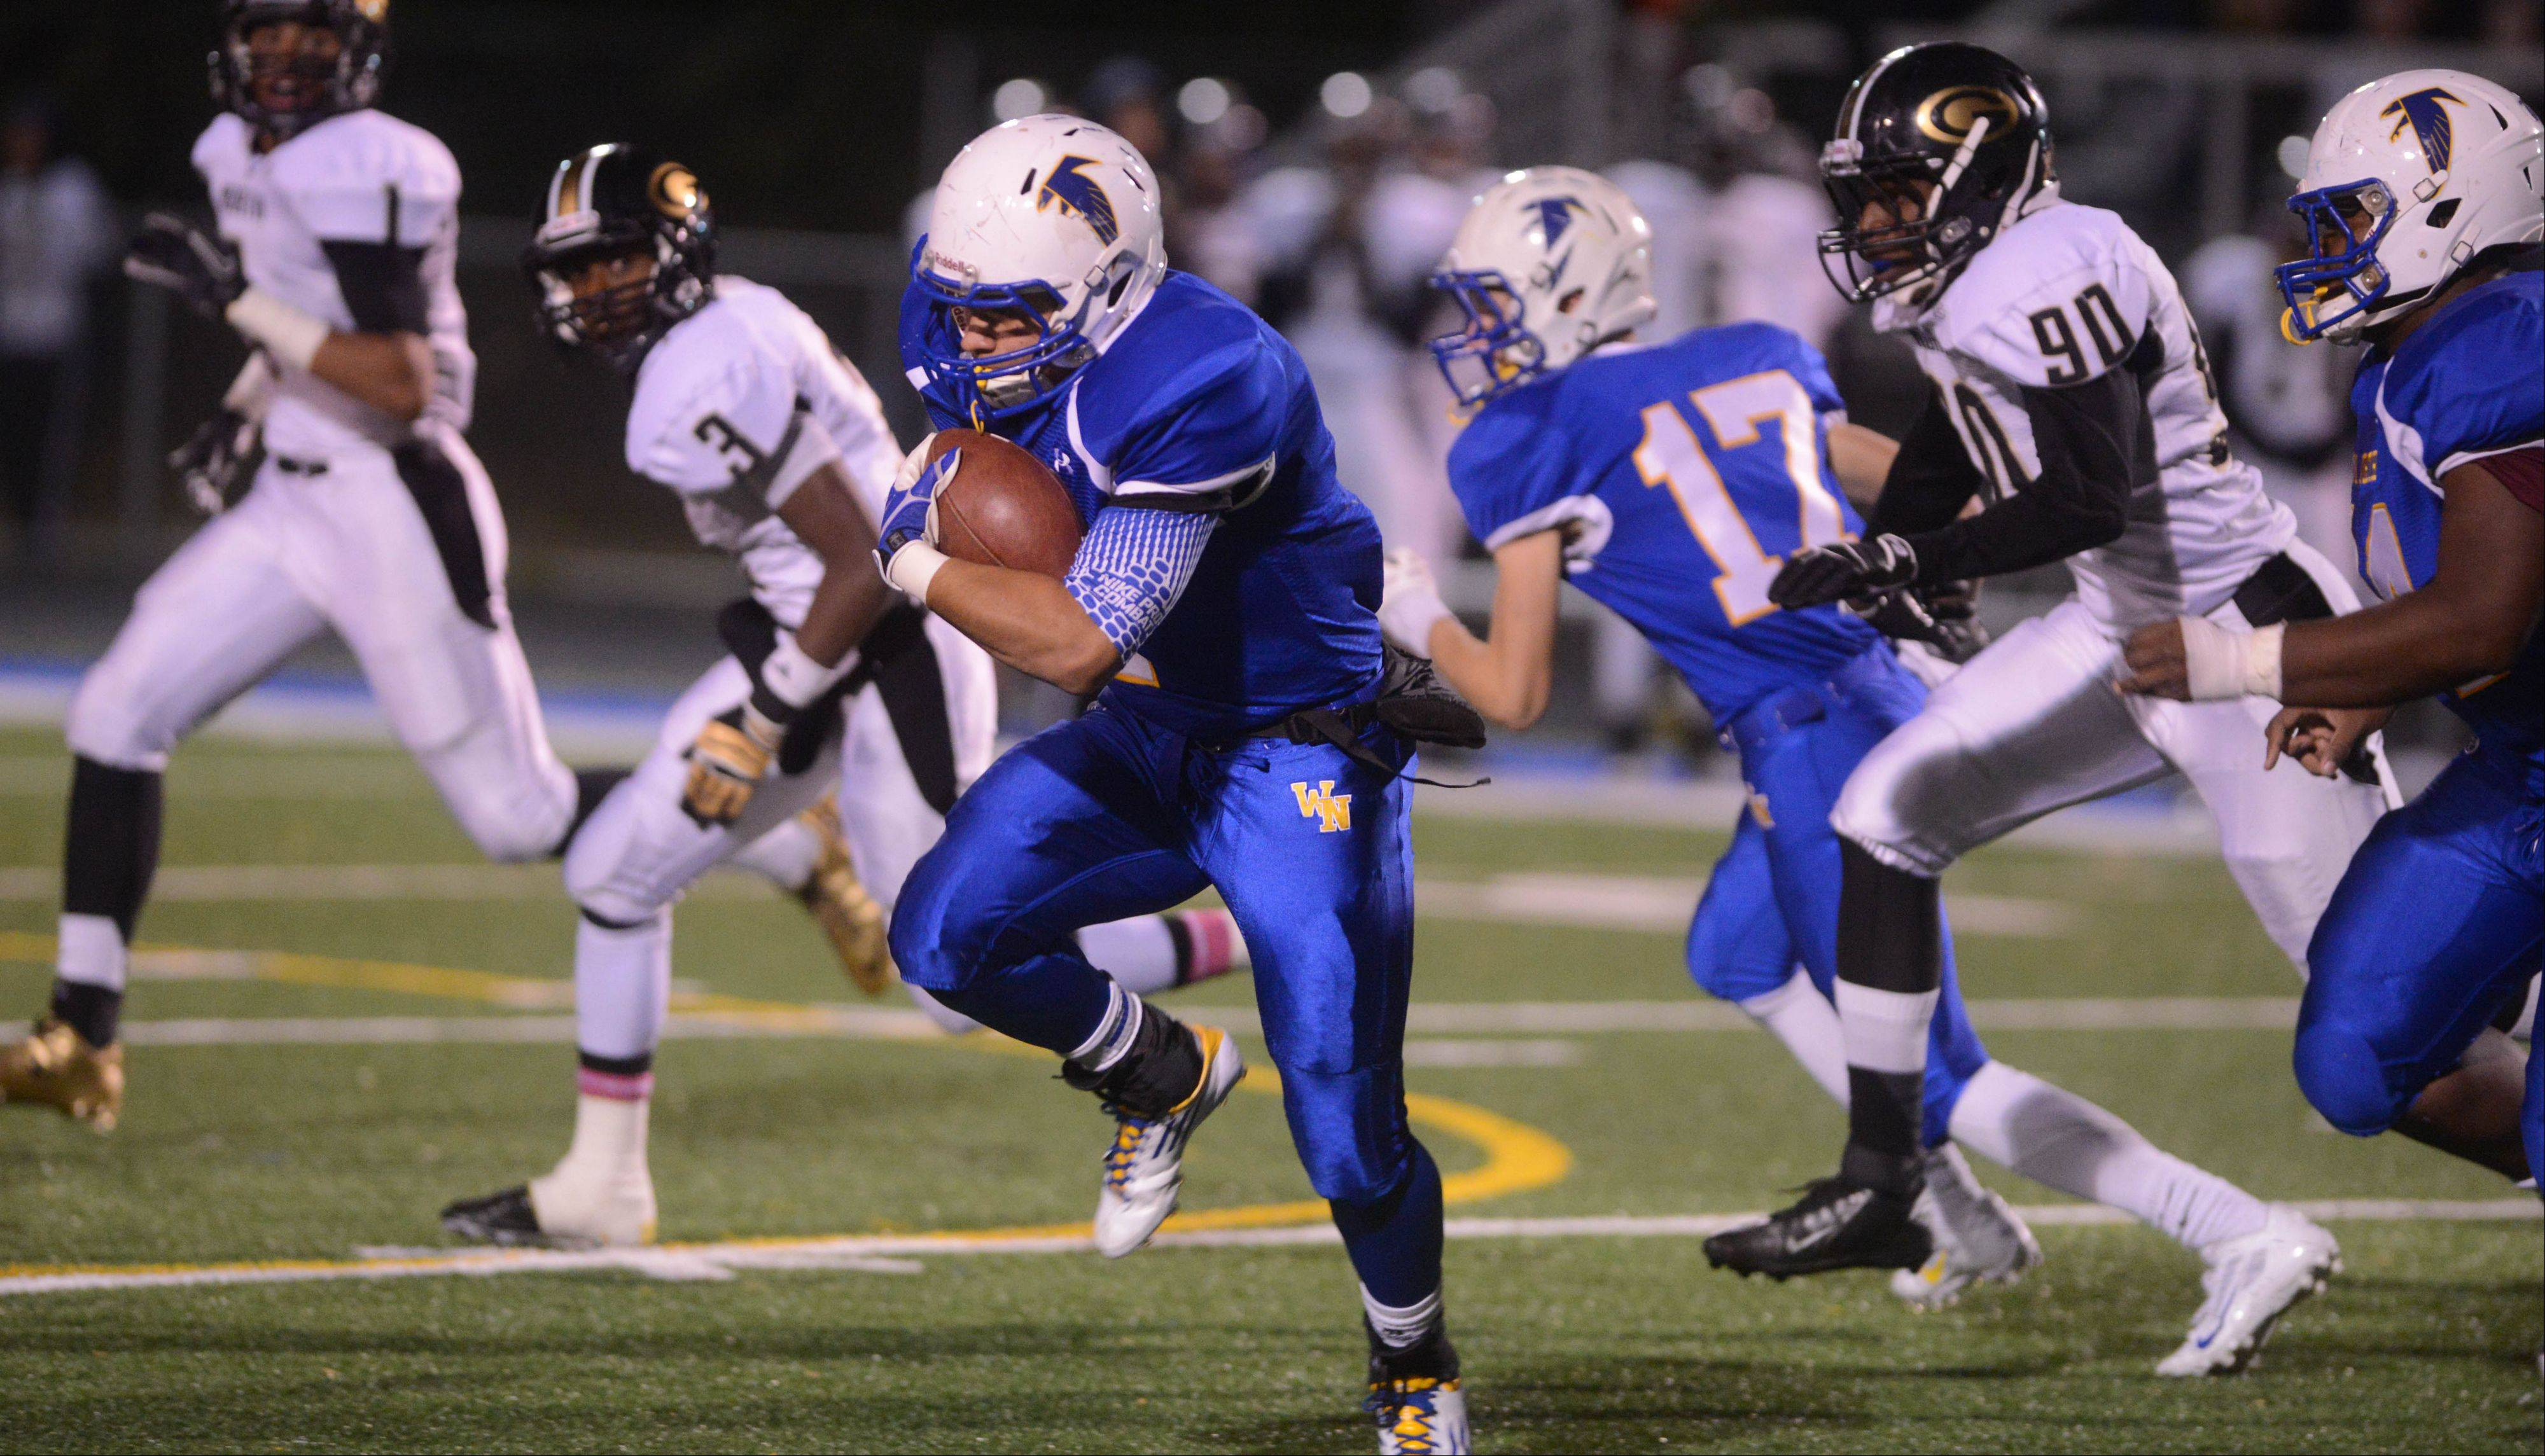 Dom Garza of Wheaton North runs the ball during the Glenbard North at Wheaton North football game Friday.